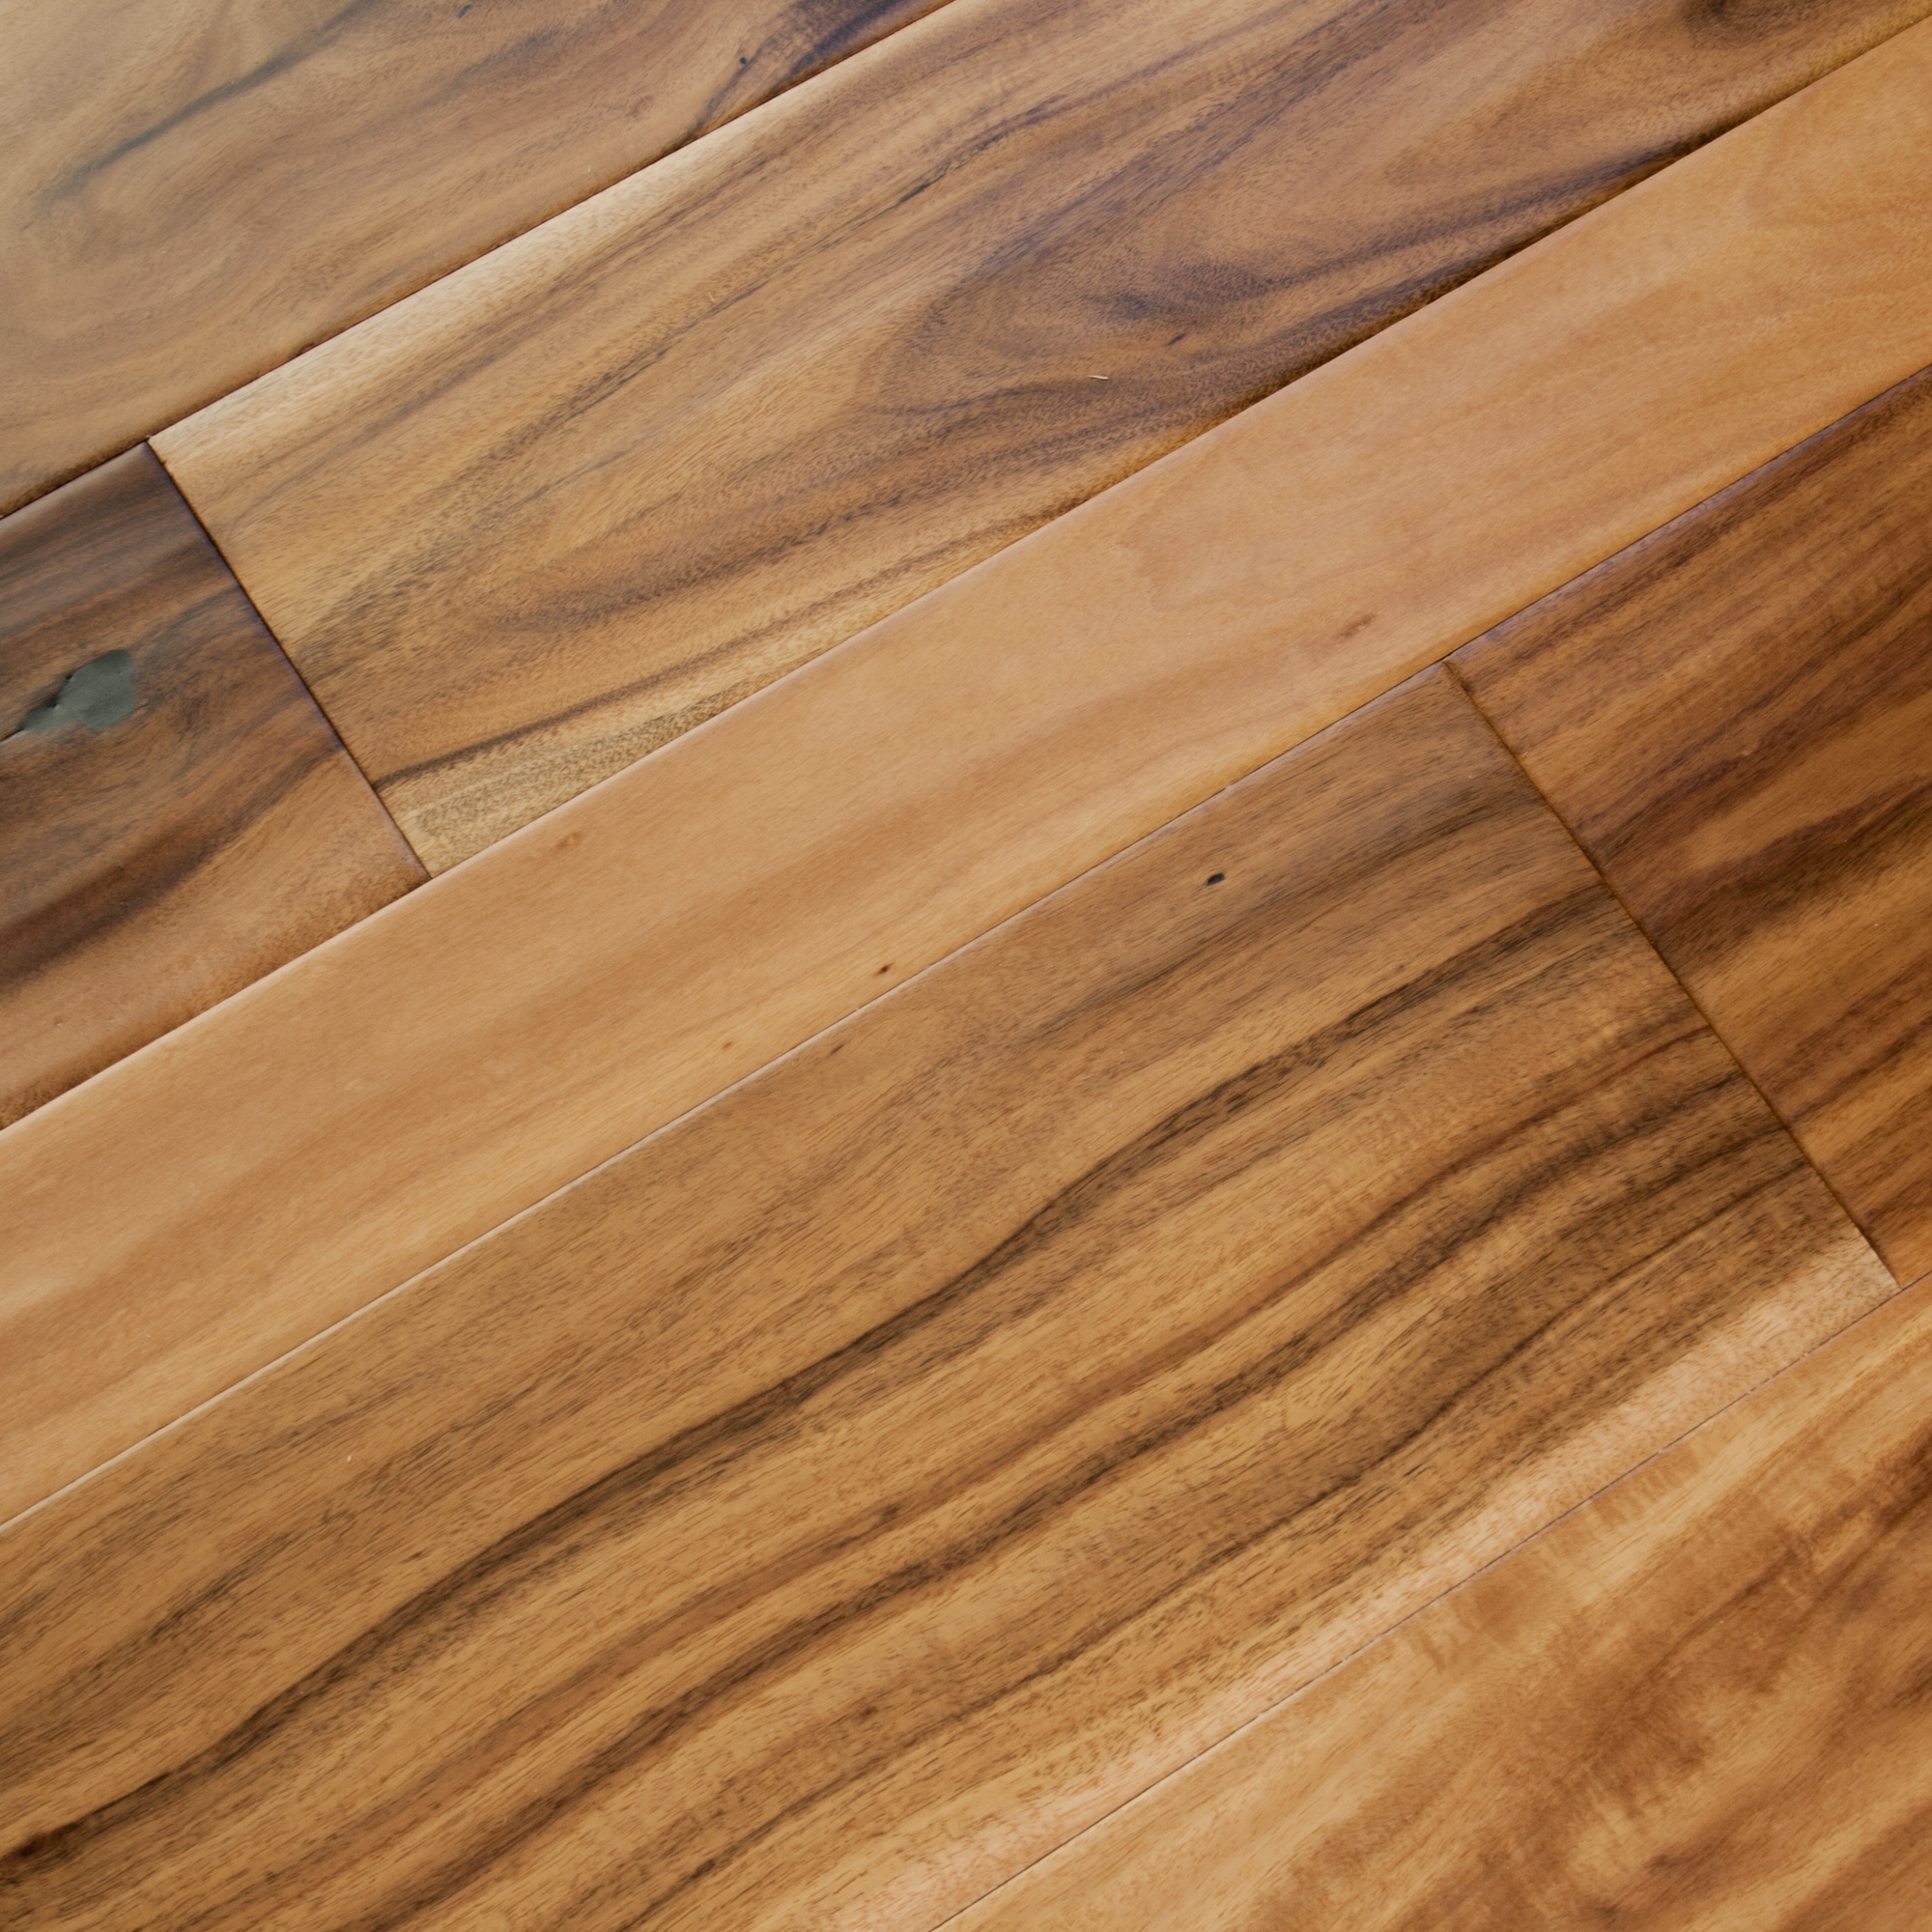 Artisan Acacia Natural Hand Scraped Engineered Hardwood